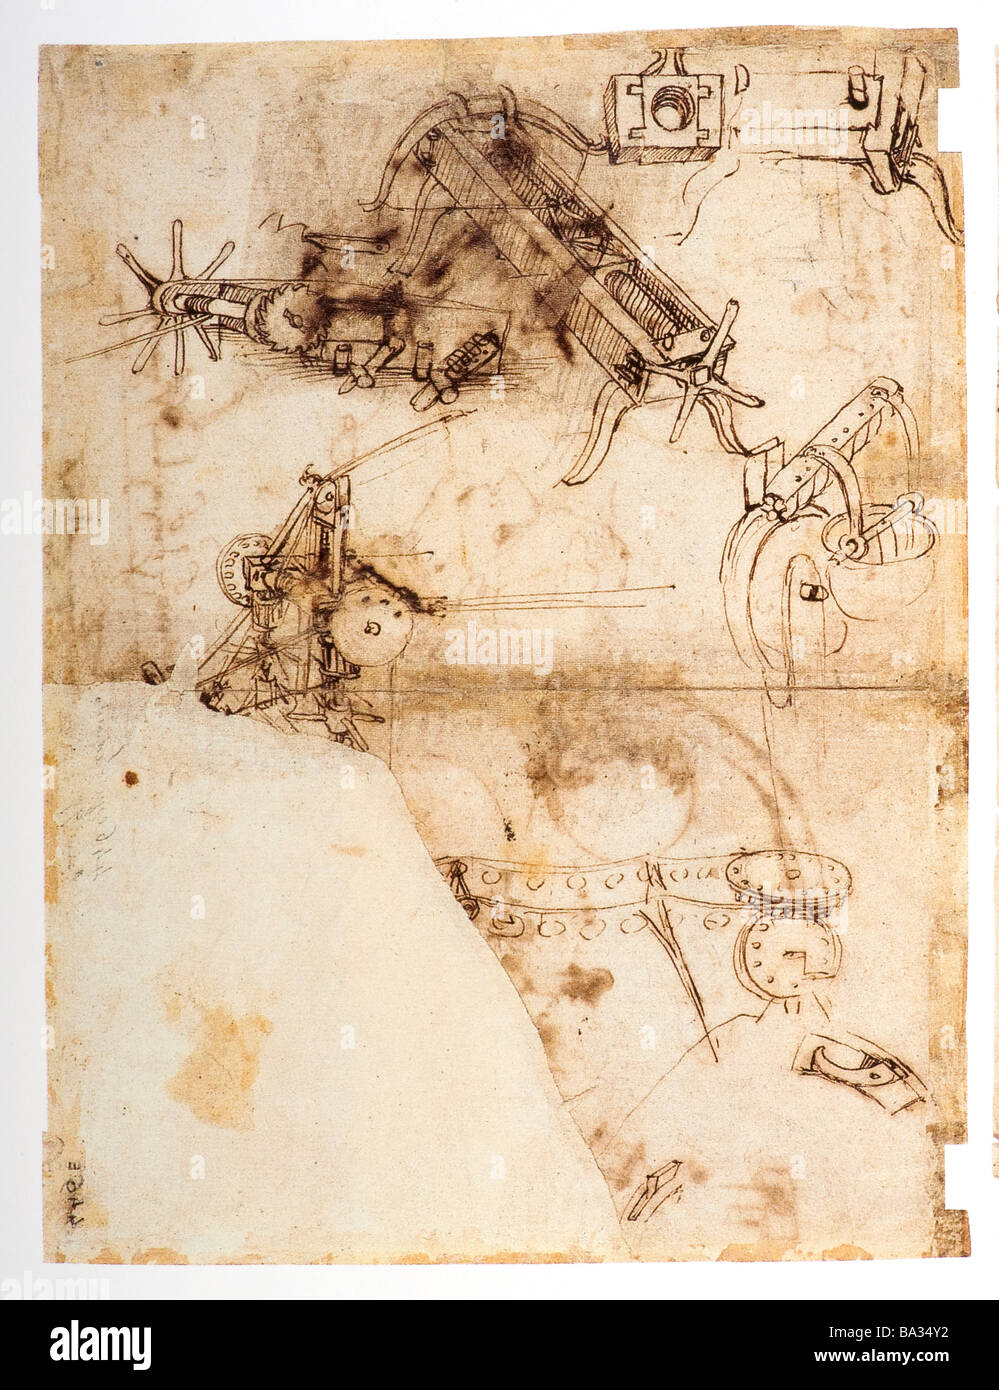 Mechanism for Drawing Crossbows by Leonardo da Vinci 1478 pen and ink - Stock Image